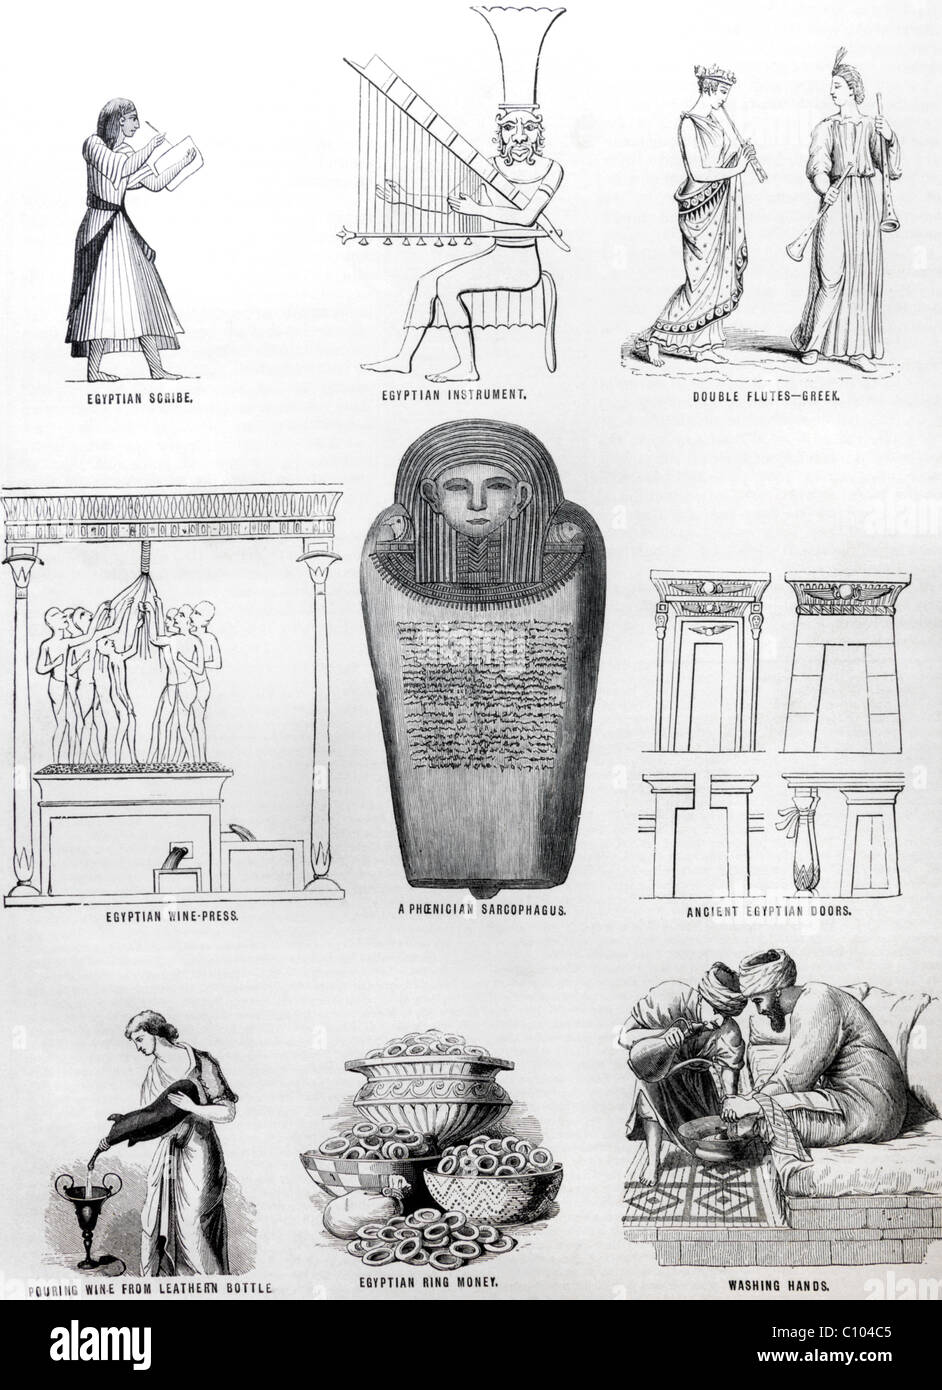 Illustrations de la Bible de tombeaux égyptiens et sarcophage Pheonician Photo Stock